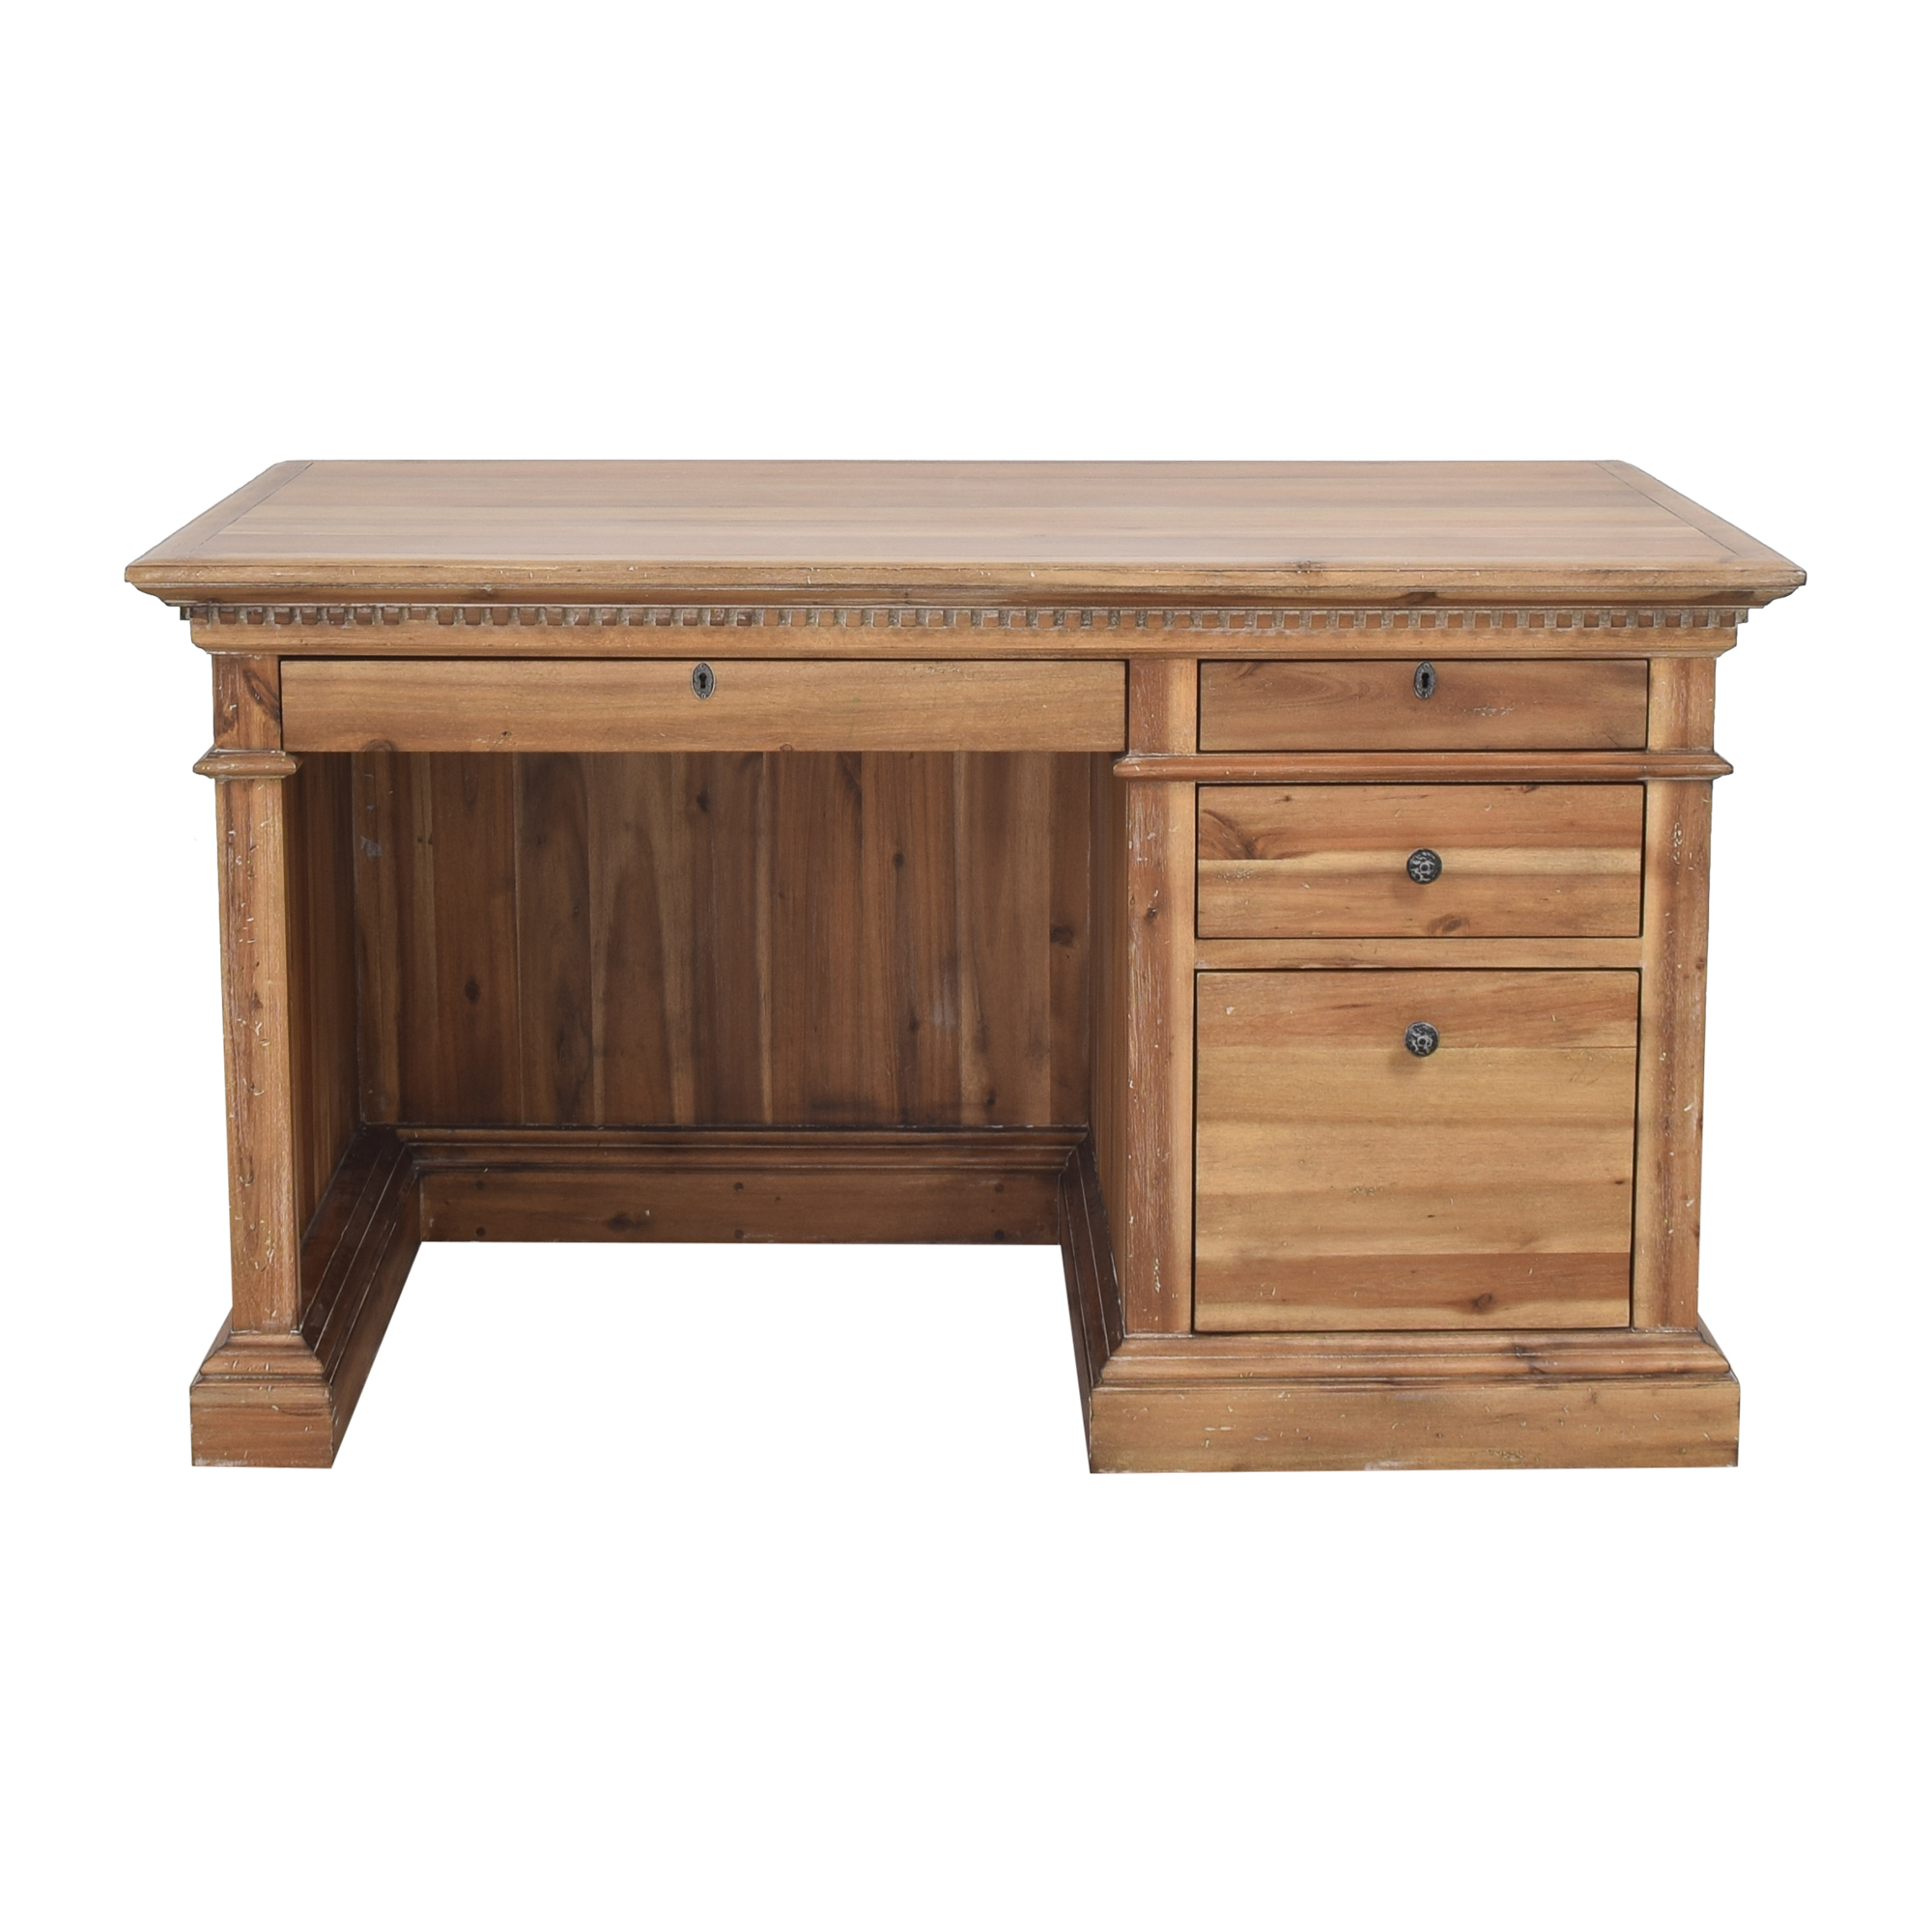 Restoration Hardware St. James Pedestal Desk sale